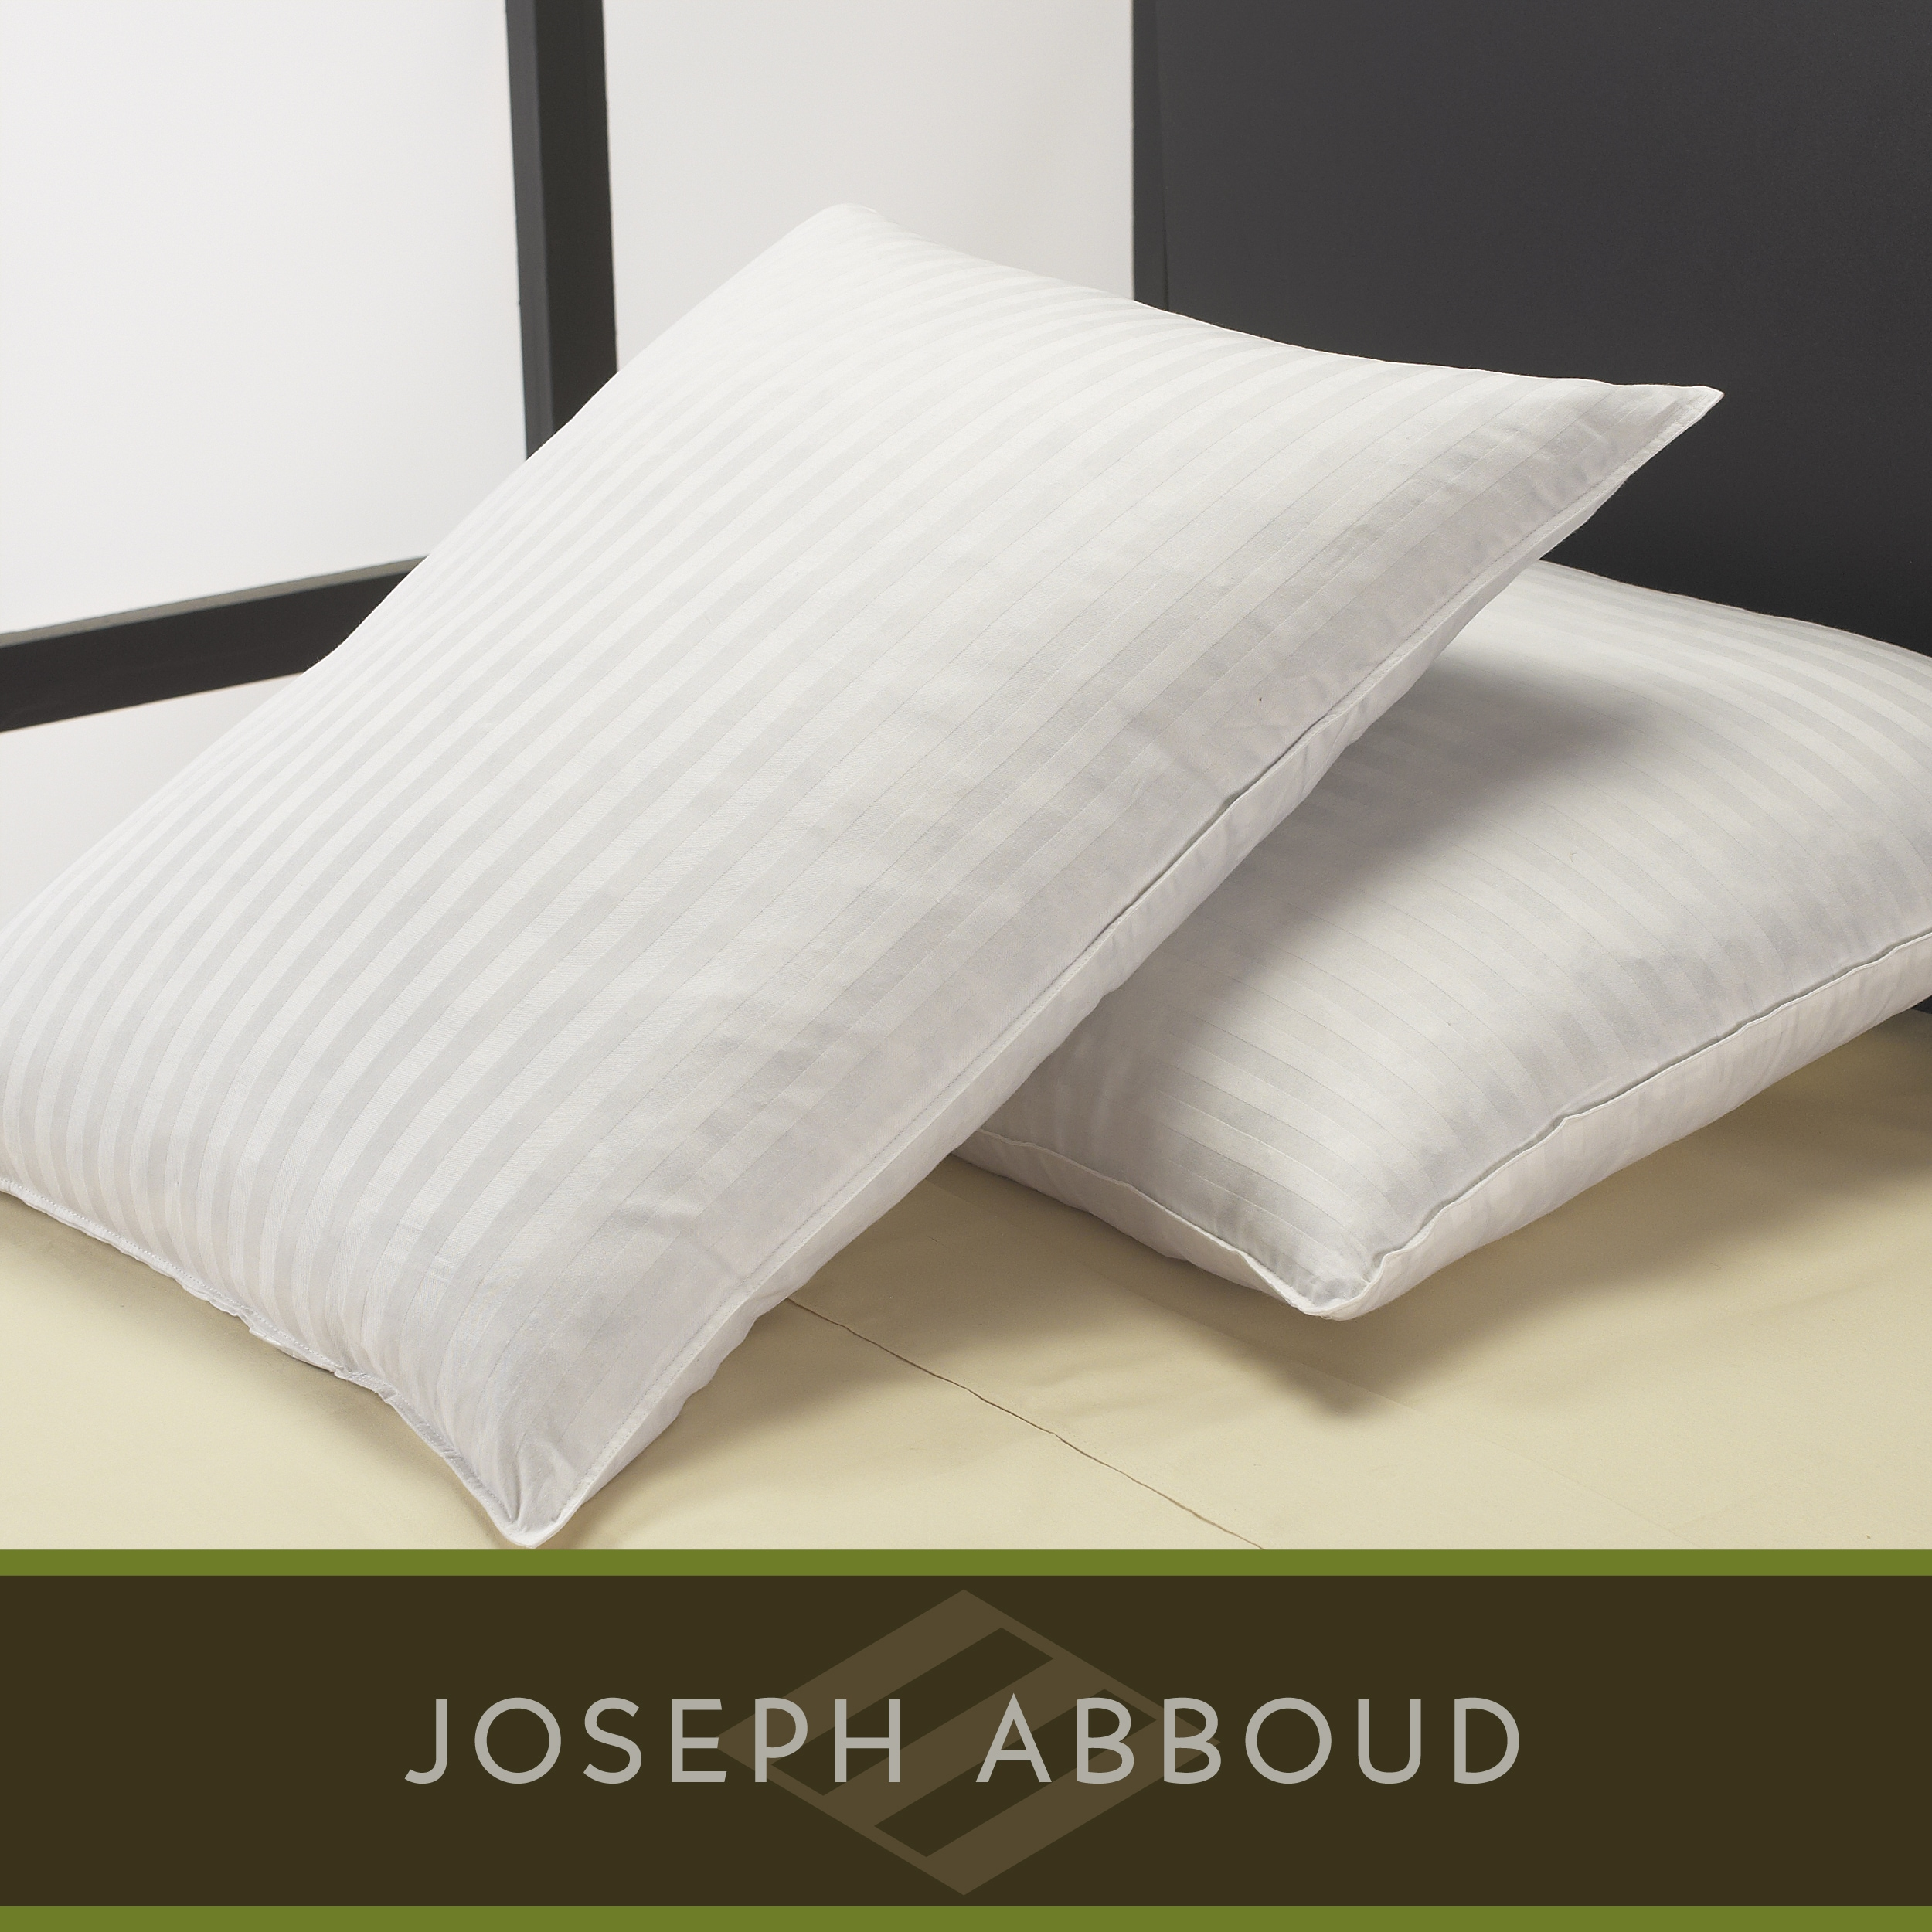 Joseph Abboud Elegance Down-like Soft Support Pillows (Set of 2)